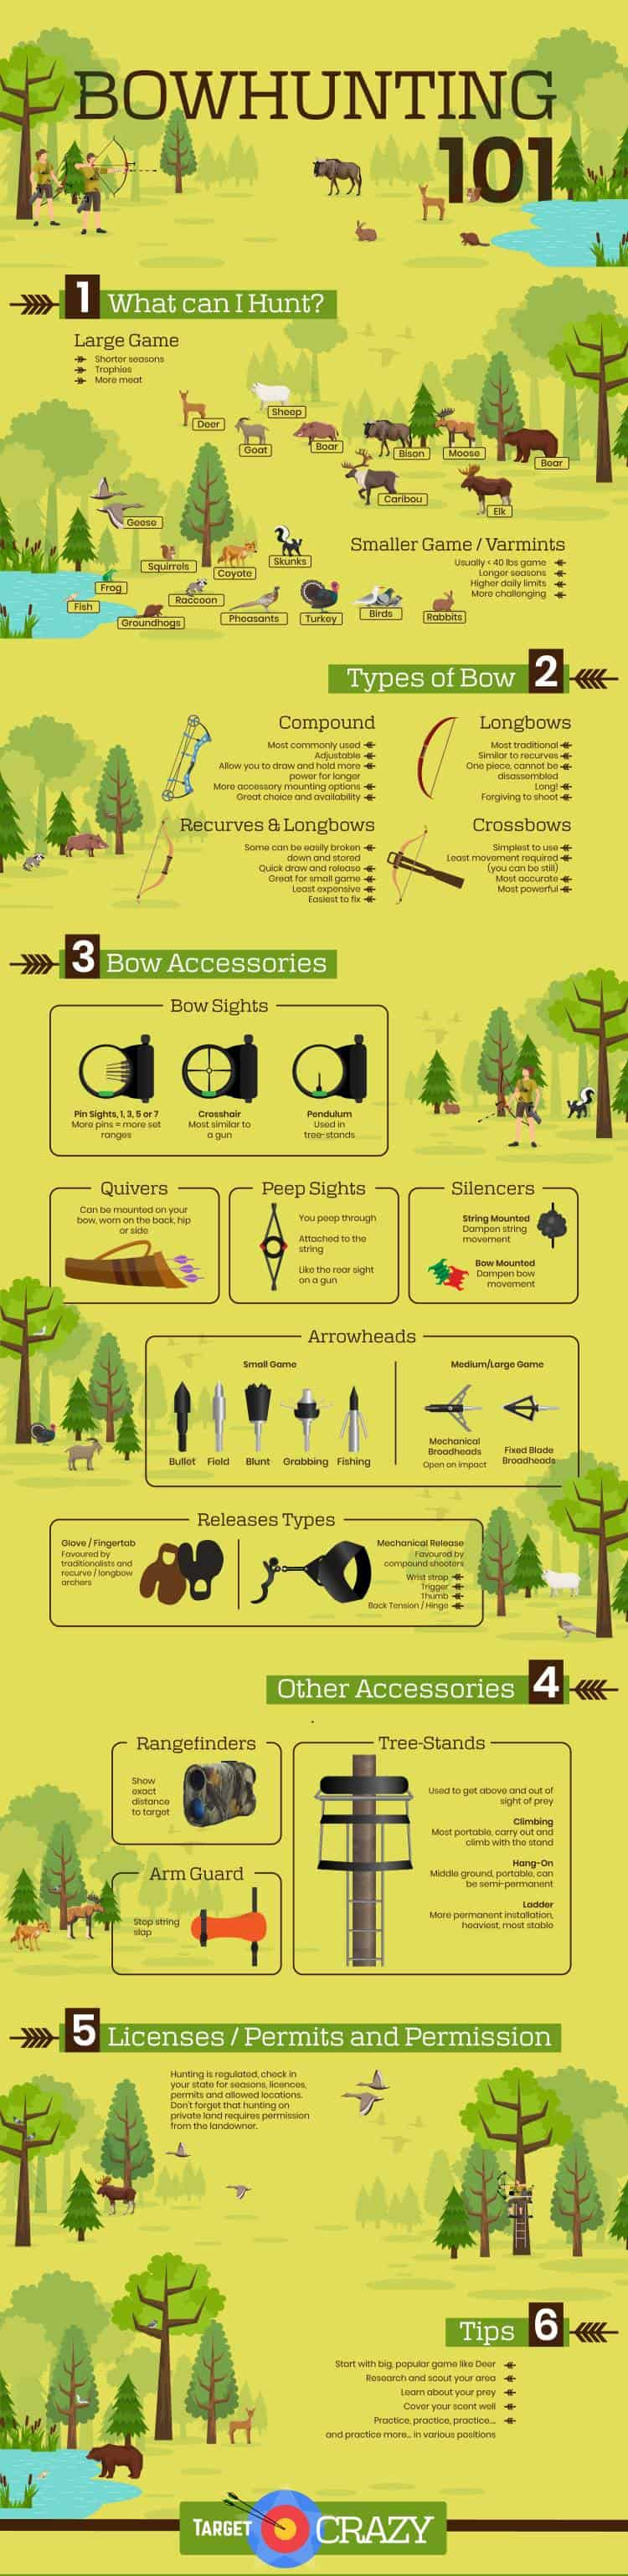 Bowhunting 101 infographic, a pictorial description of things you can hunt, types of bows, bow accessories, arrowheads, hunting accessories and tips and tricks all beginner bowhunters should know.